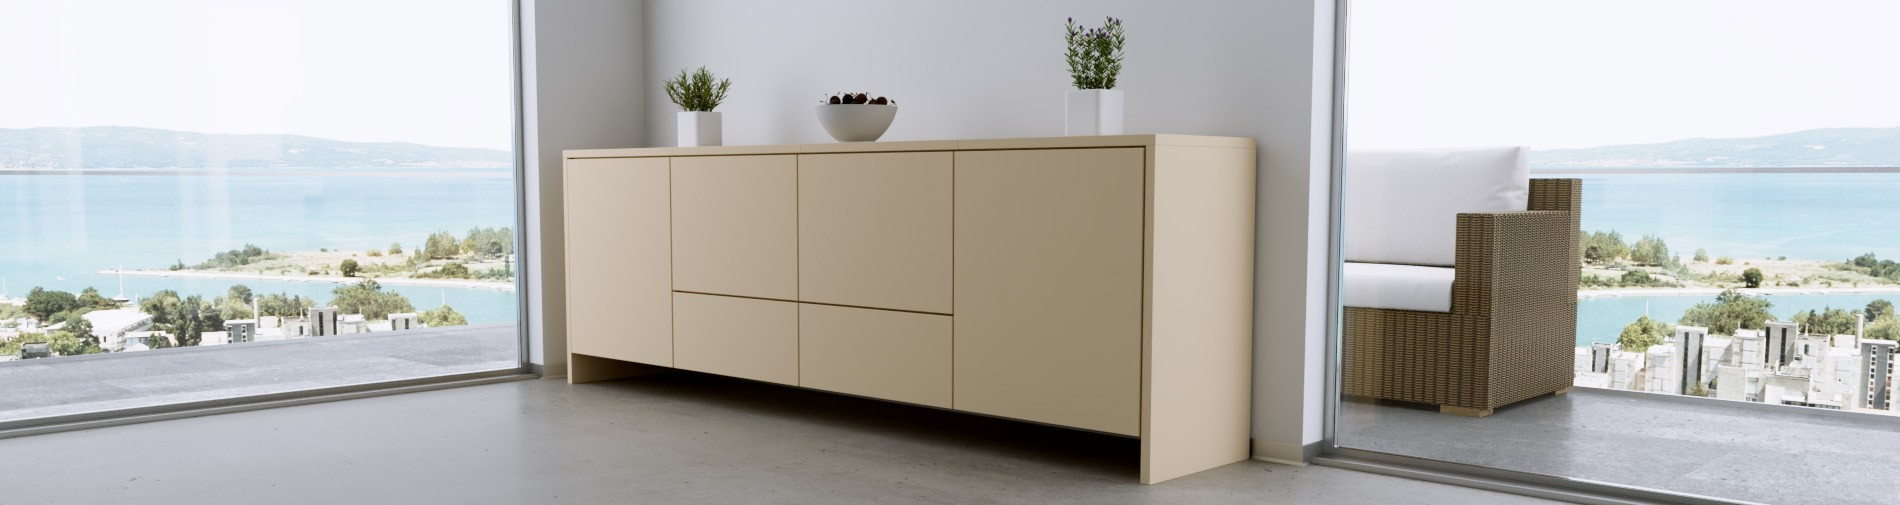 Sideboard Nach Maß Jetzt Online Planen & Bestellen Pertaining To Most Recently Released Etienne Sideboards (#15 of 20)